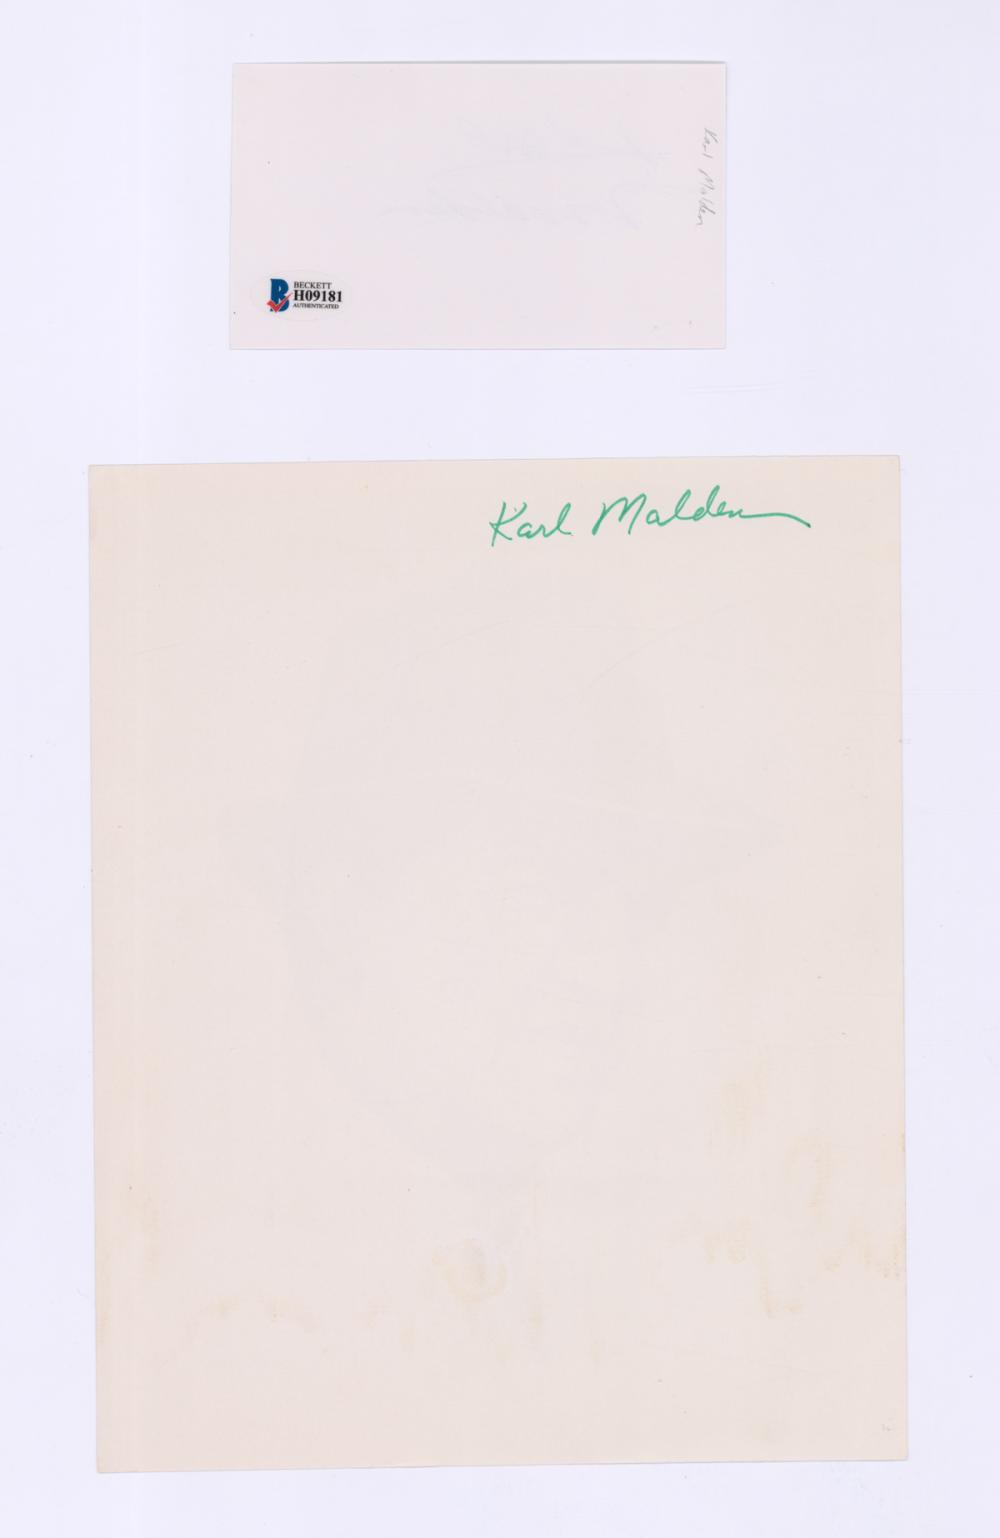 Lot 667: Karl Malden Signed Index Card with Photo of Print